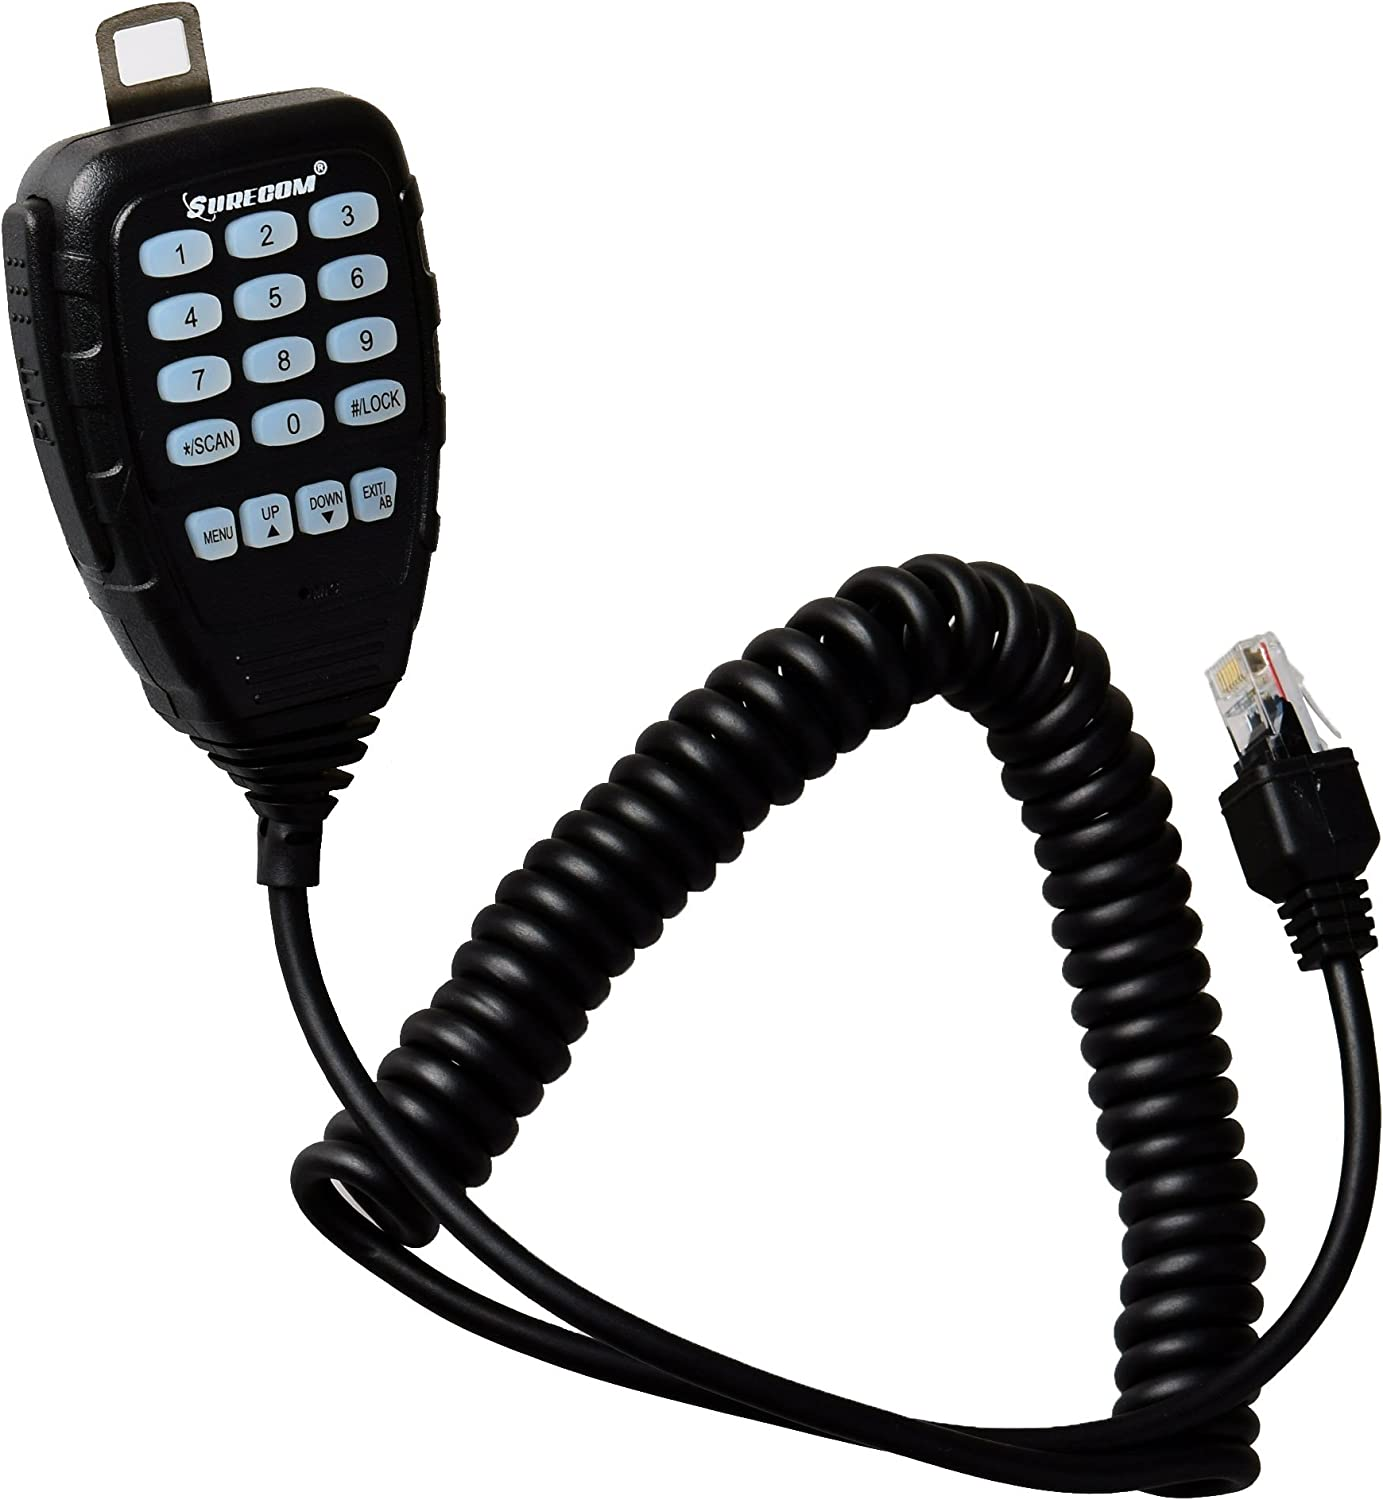 Gam3Gear Surecom KT-8900D 136-174 220-260 350-390 400-480 Mini Color Screen Mobile Radio